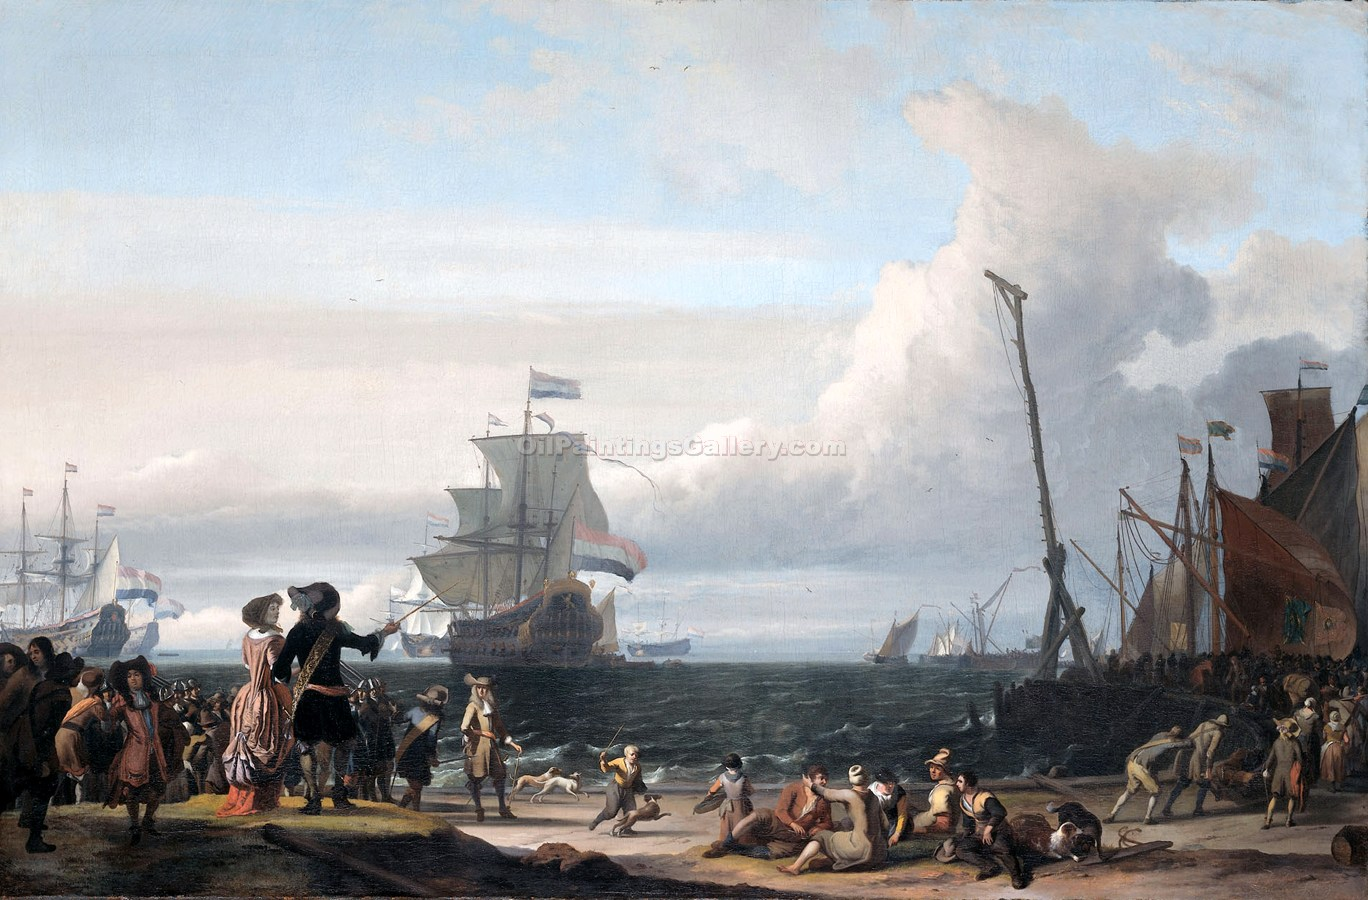 Dutch Ships in the Roadstead of Texel by Ludolf Backhuysen | Art Reproductions - Oil Paintings Gallery